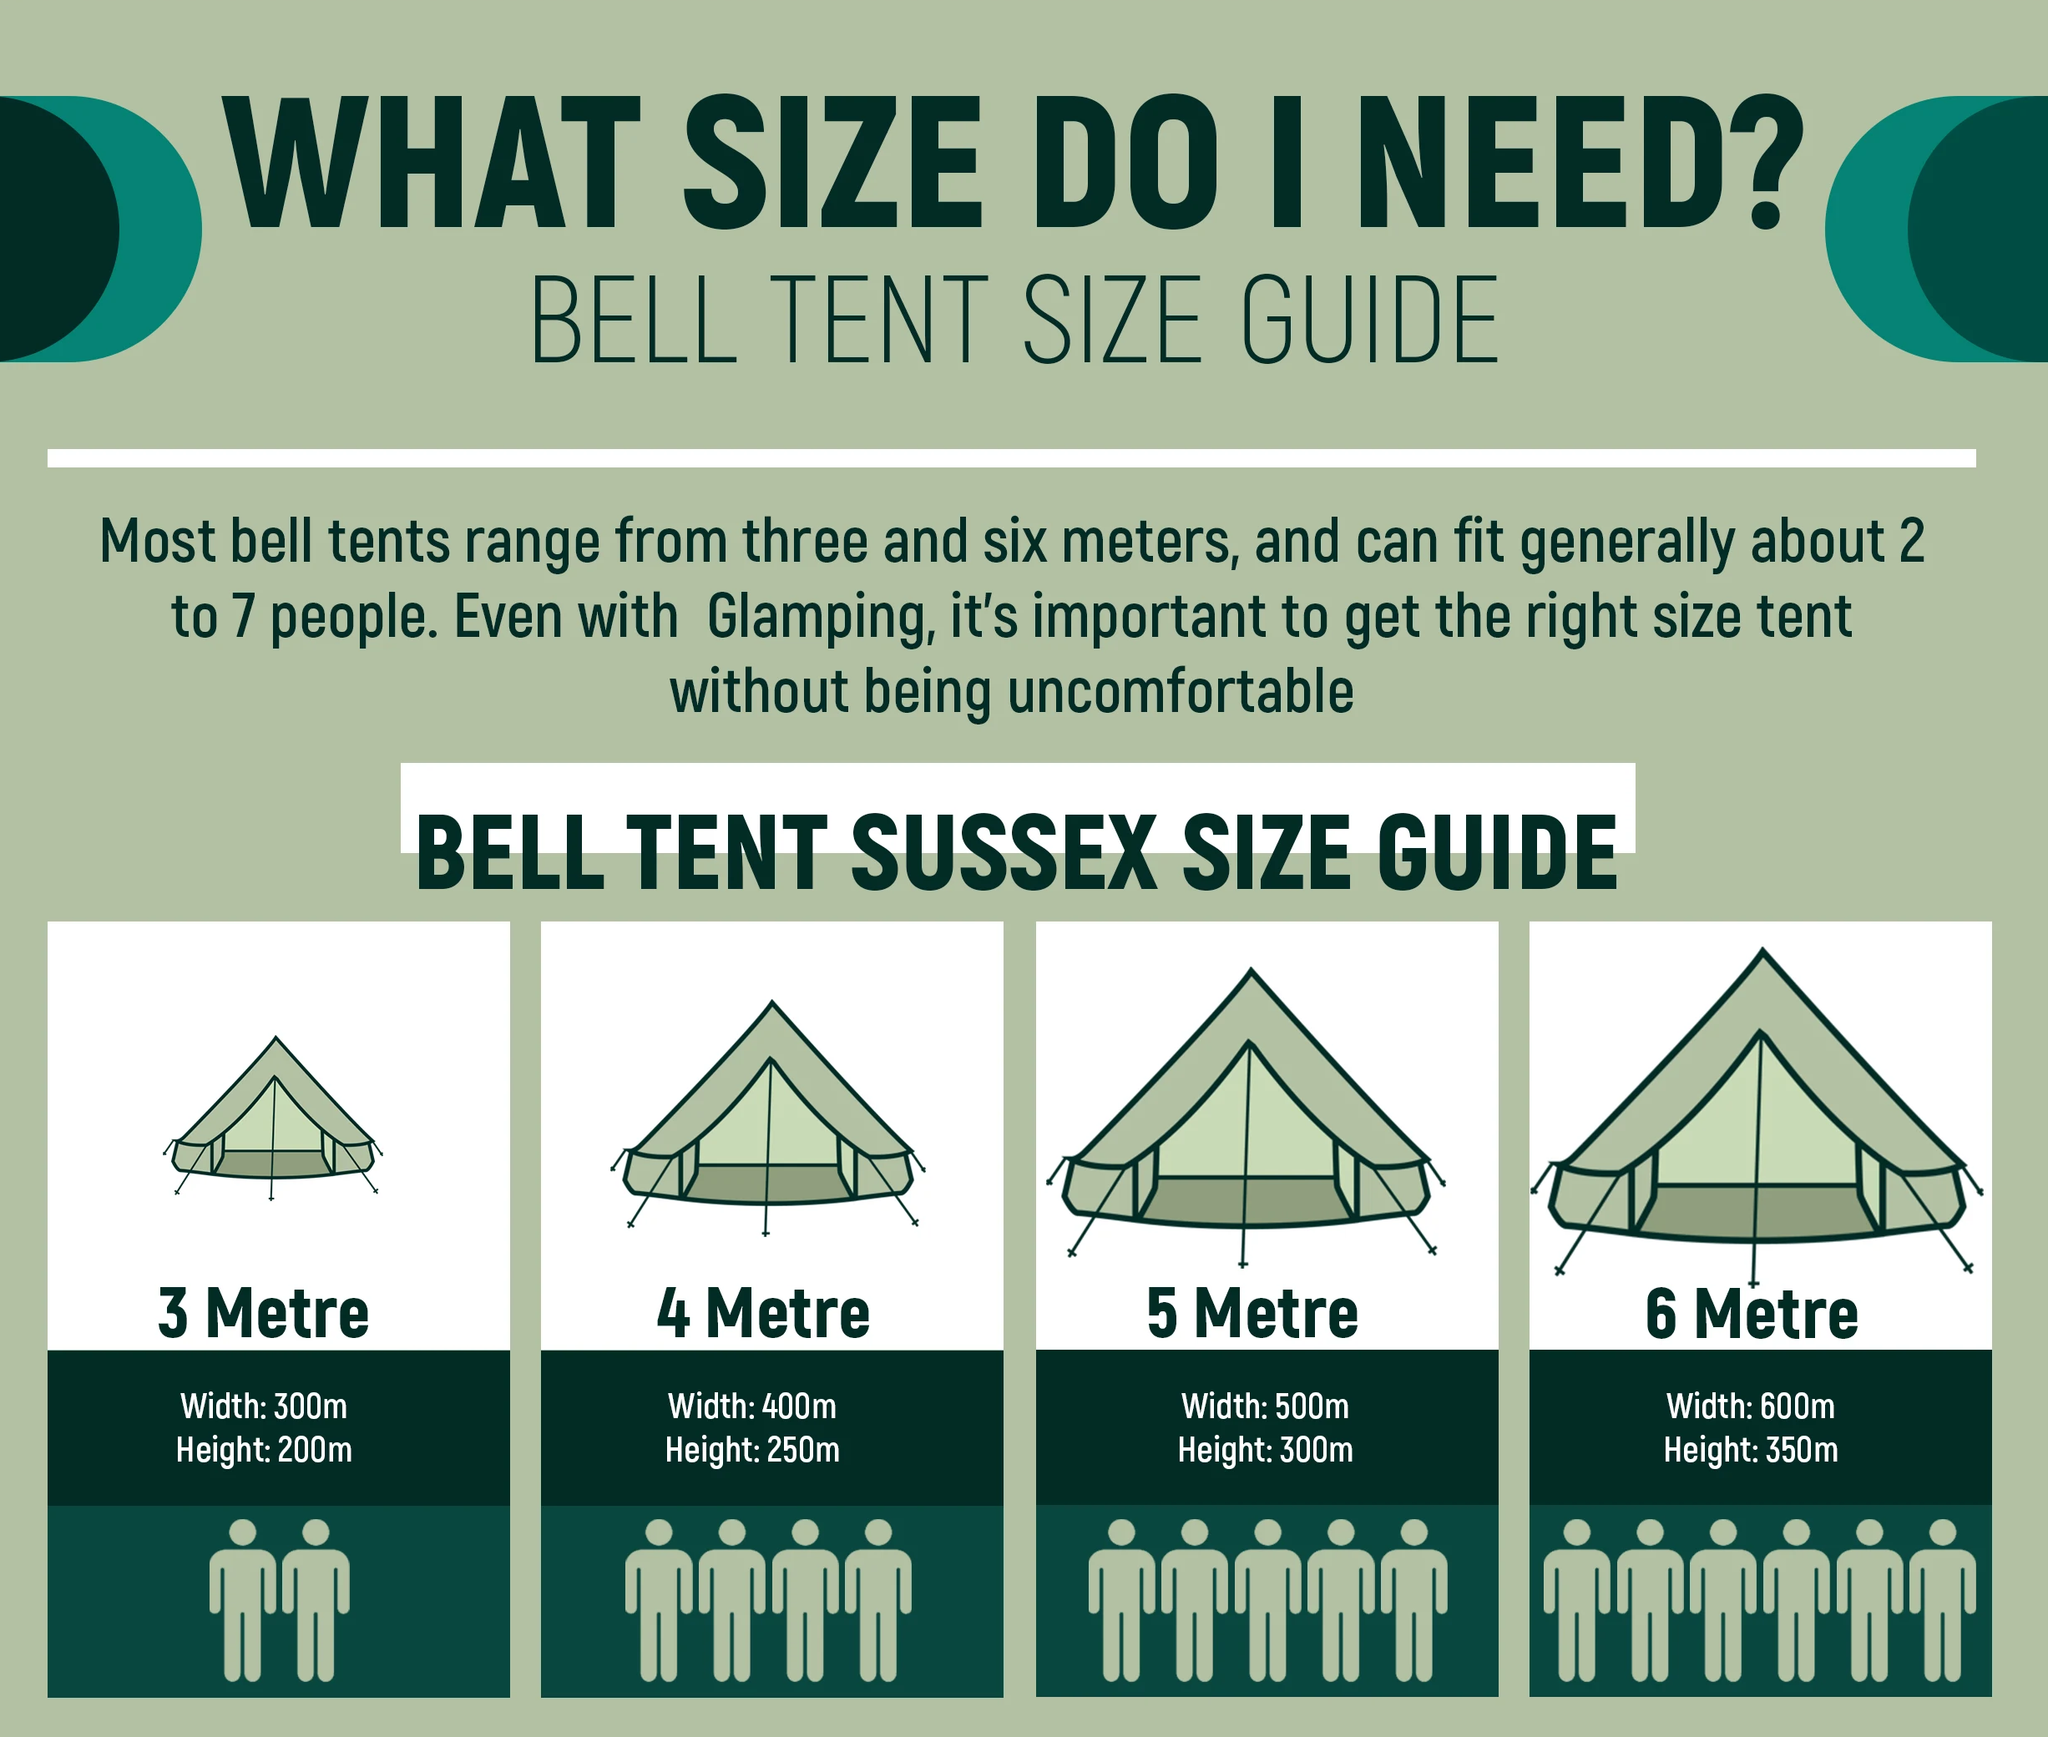 Bell Tent Size Guide